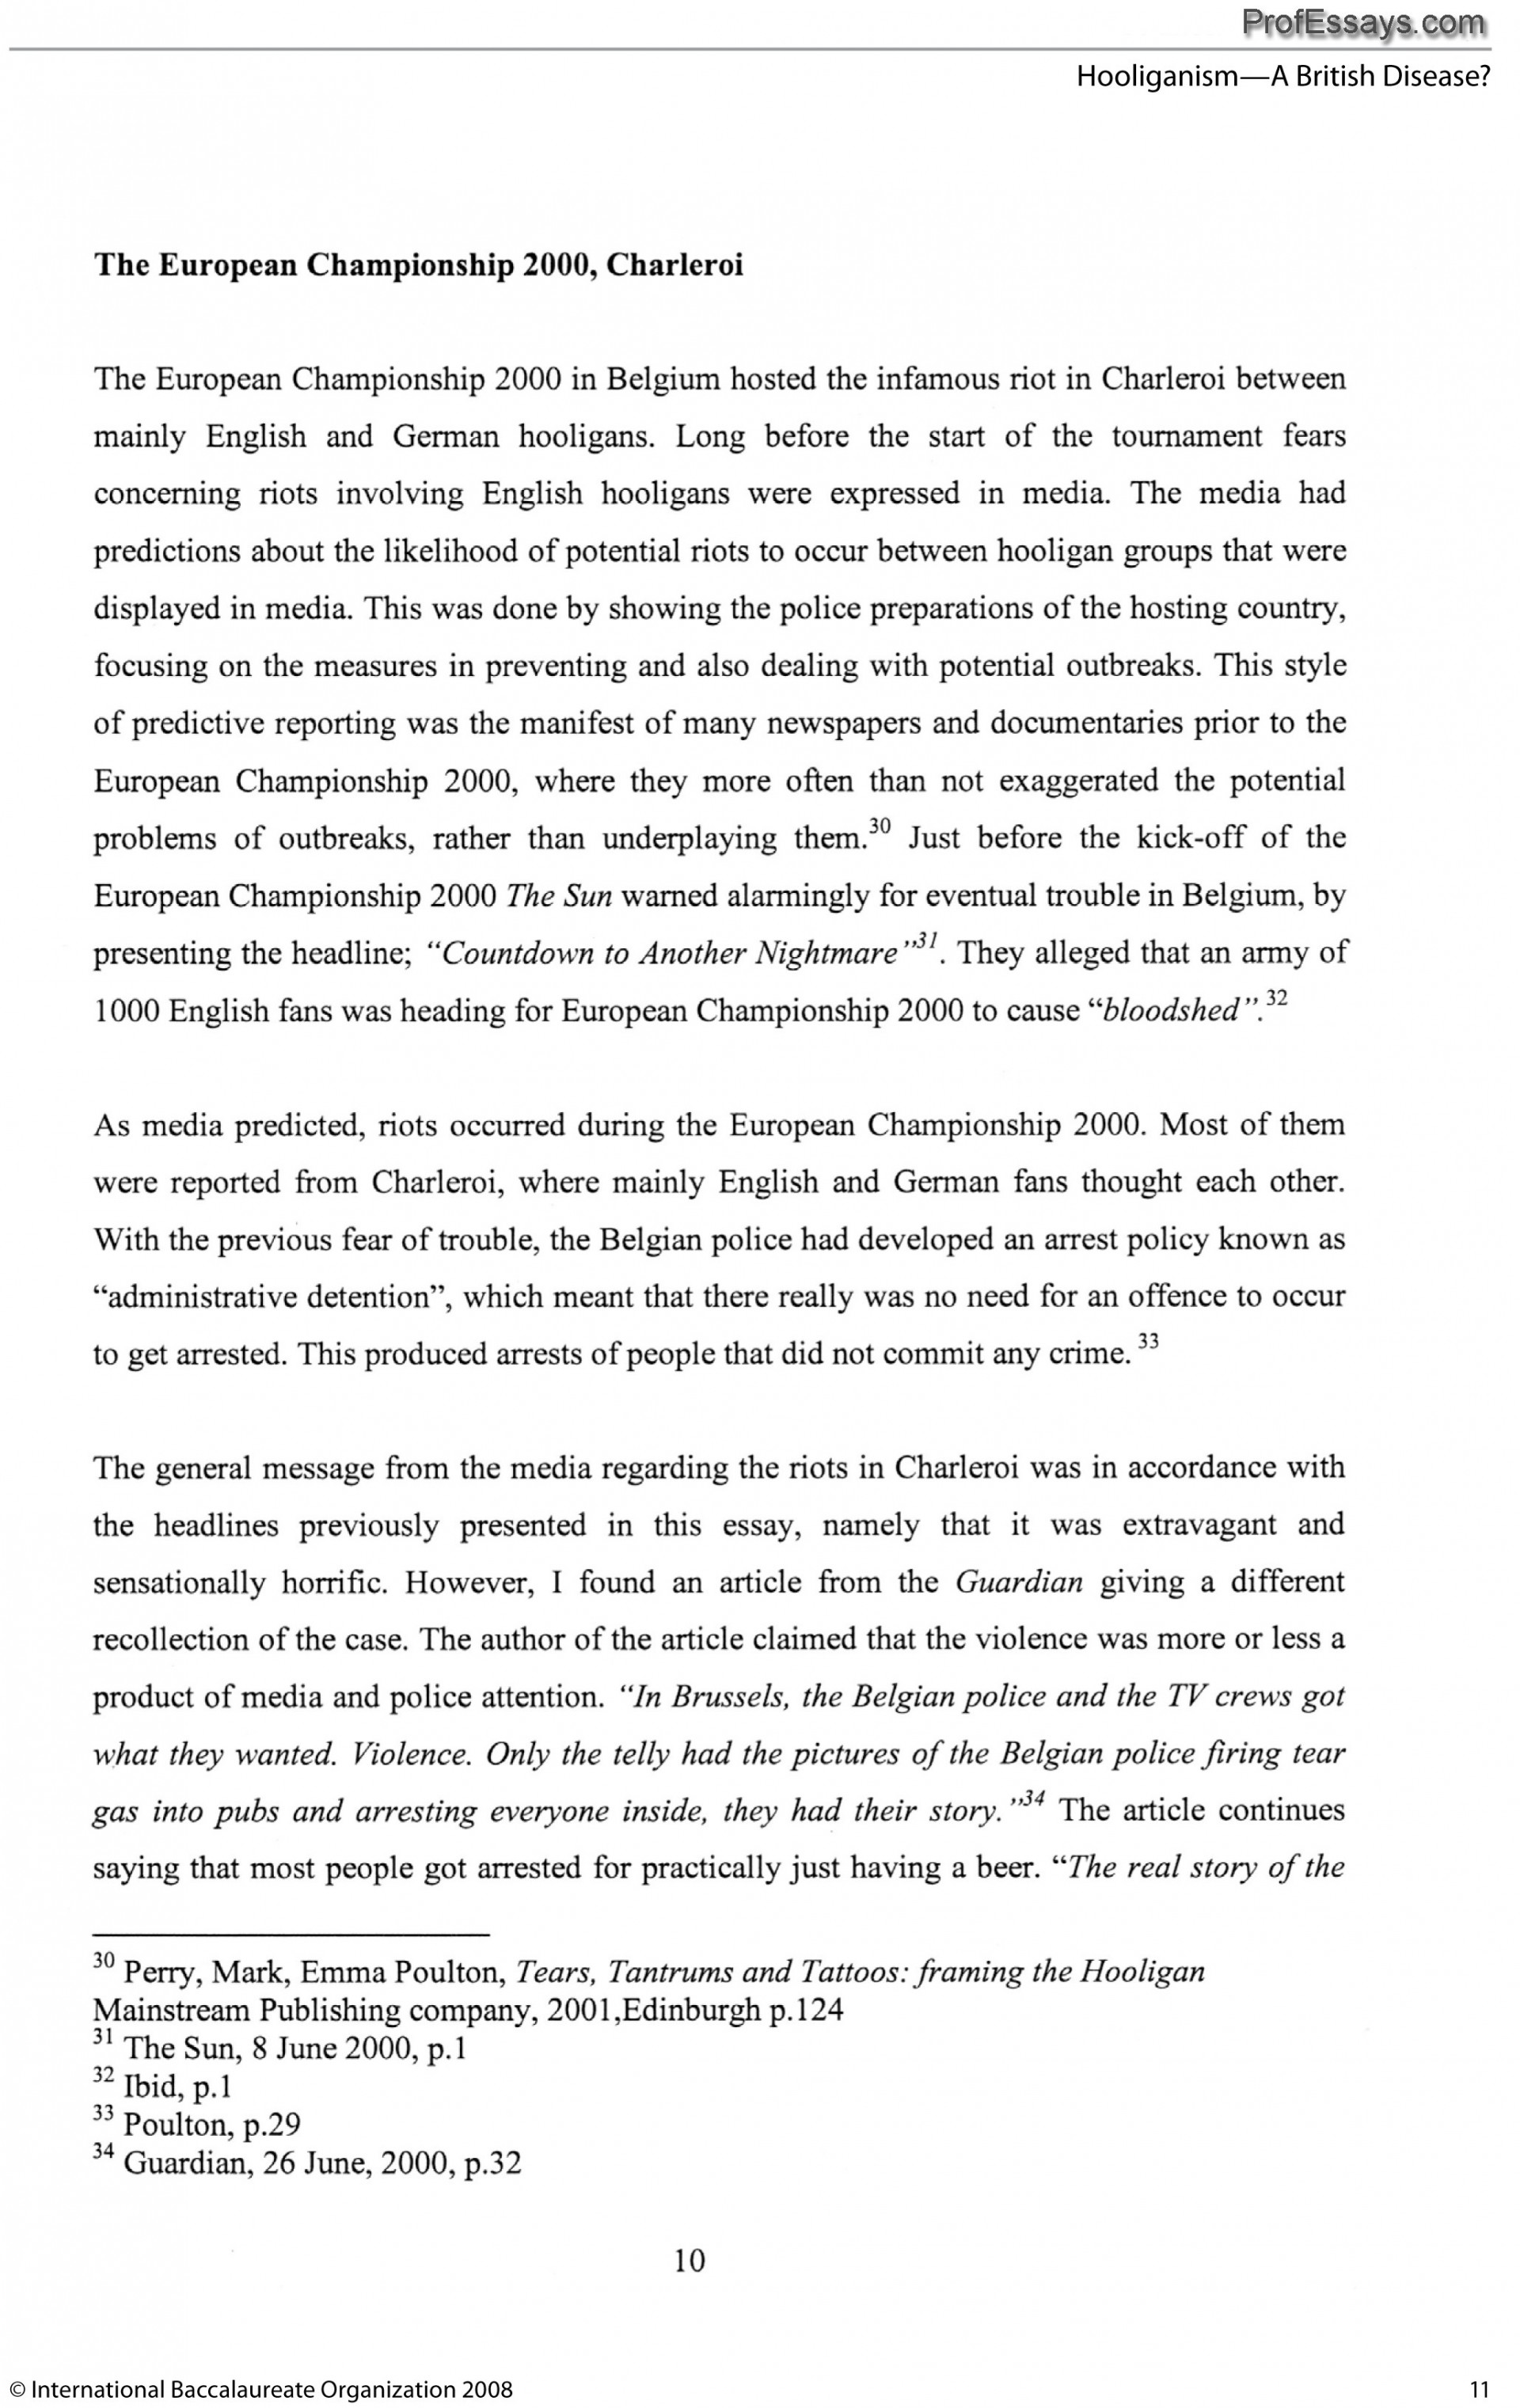 012 Essay Example Ib Extended Free Sample Vs Breathtaking Paper Term Personal Research What Is The Difference Persuasive 1920